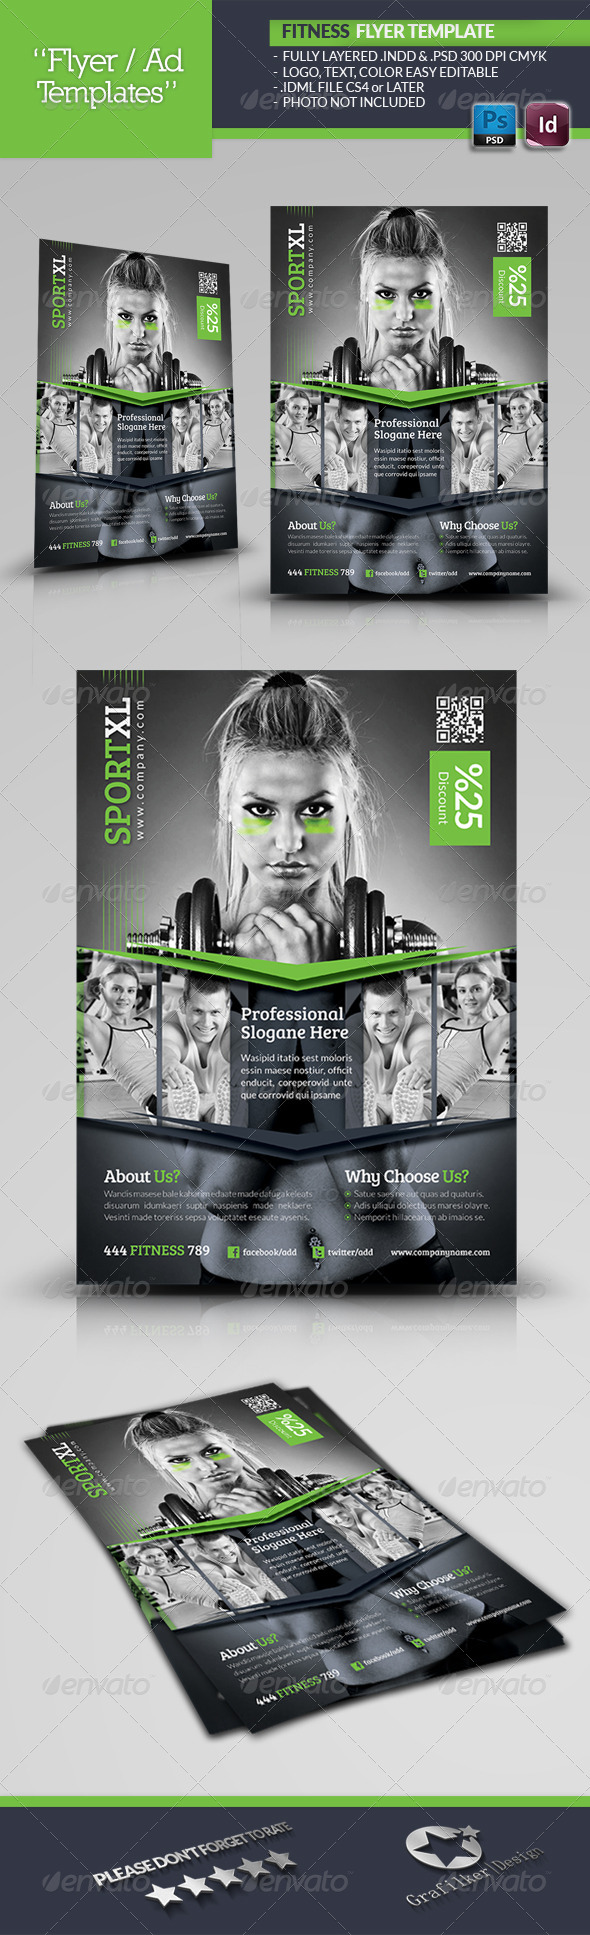 GraphicRiver Fitness Time Flyer Template 5005271